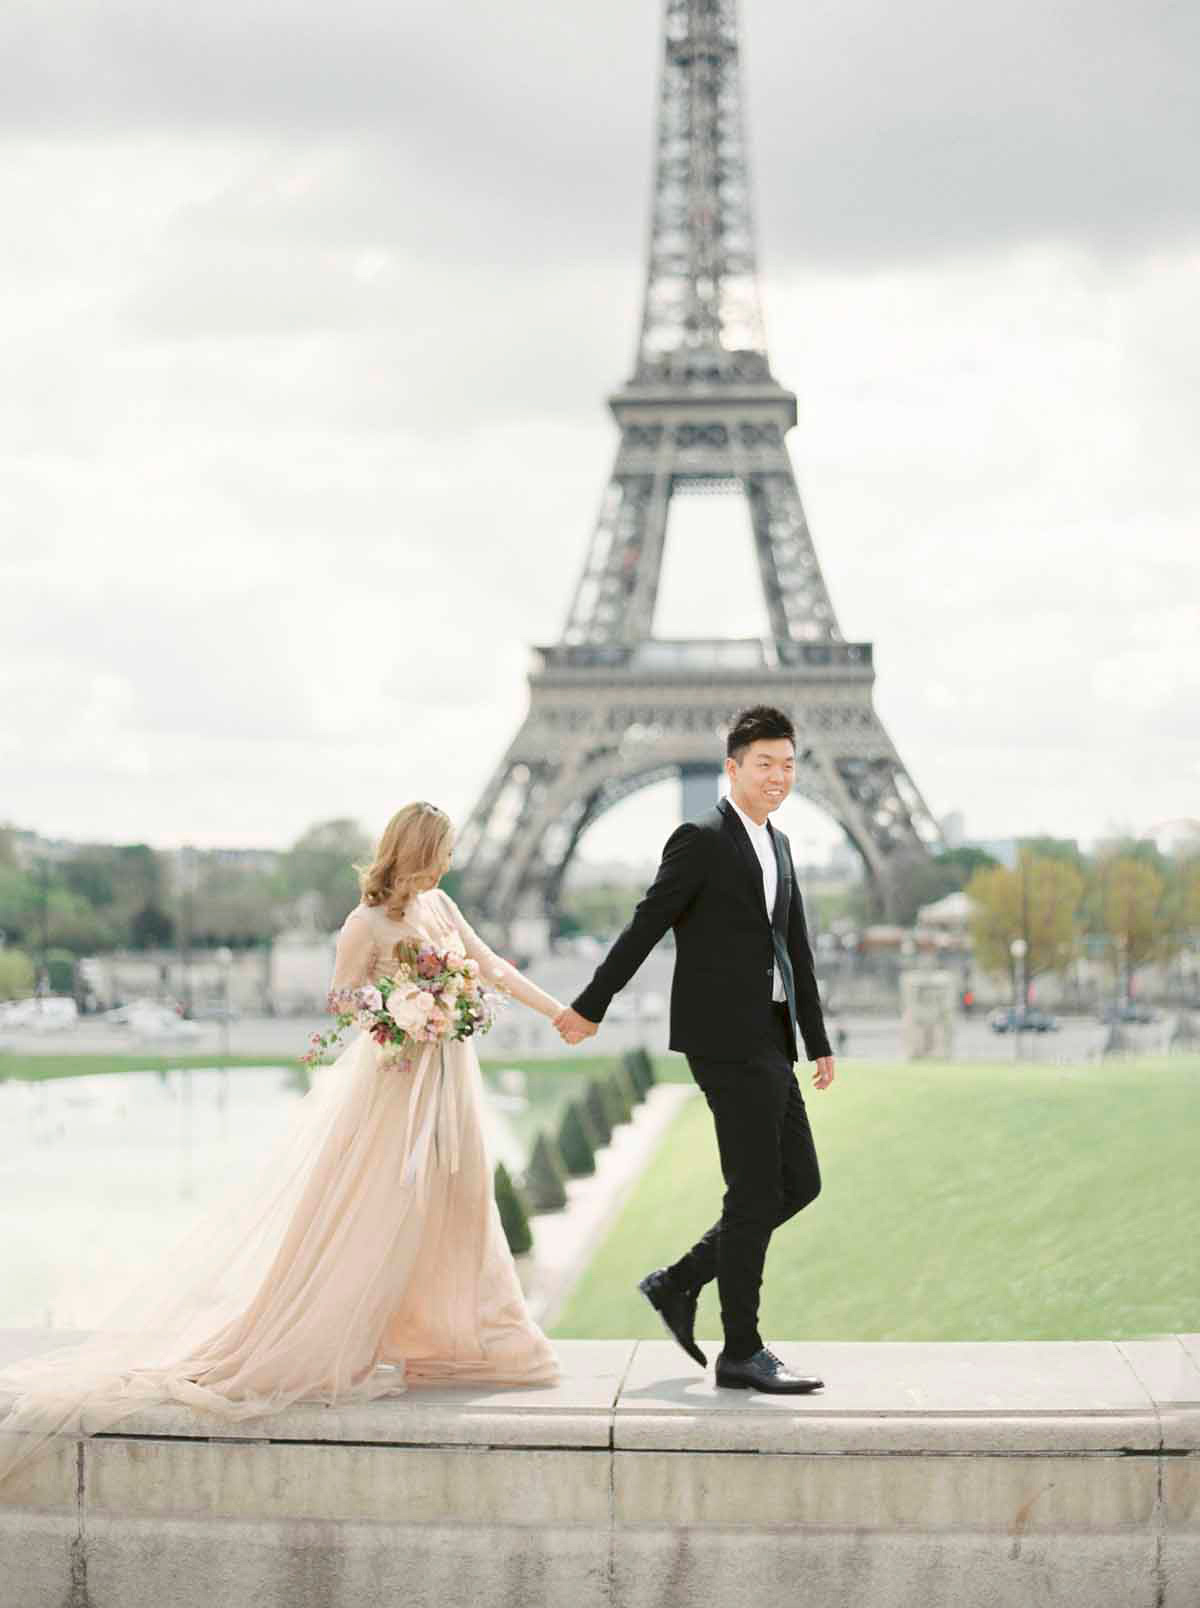 A Dreamy Engagement Shoot in Paris Shot On Film | Love My